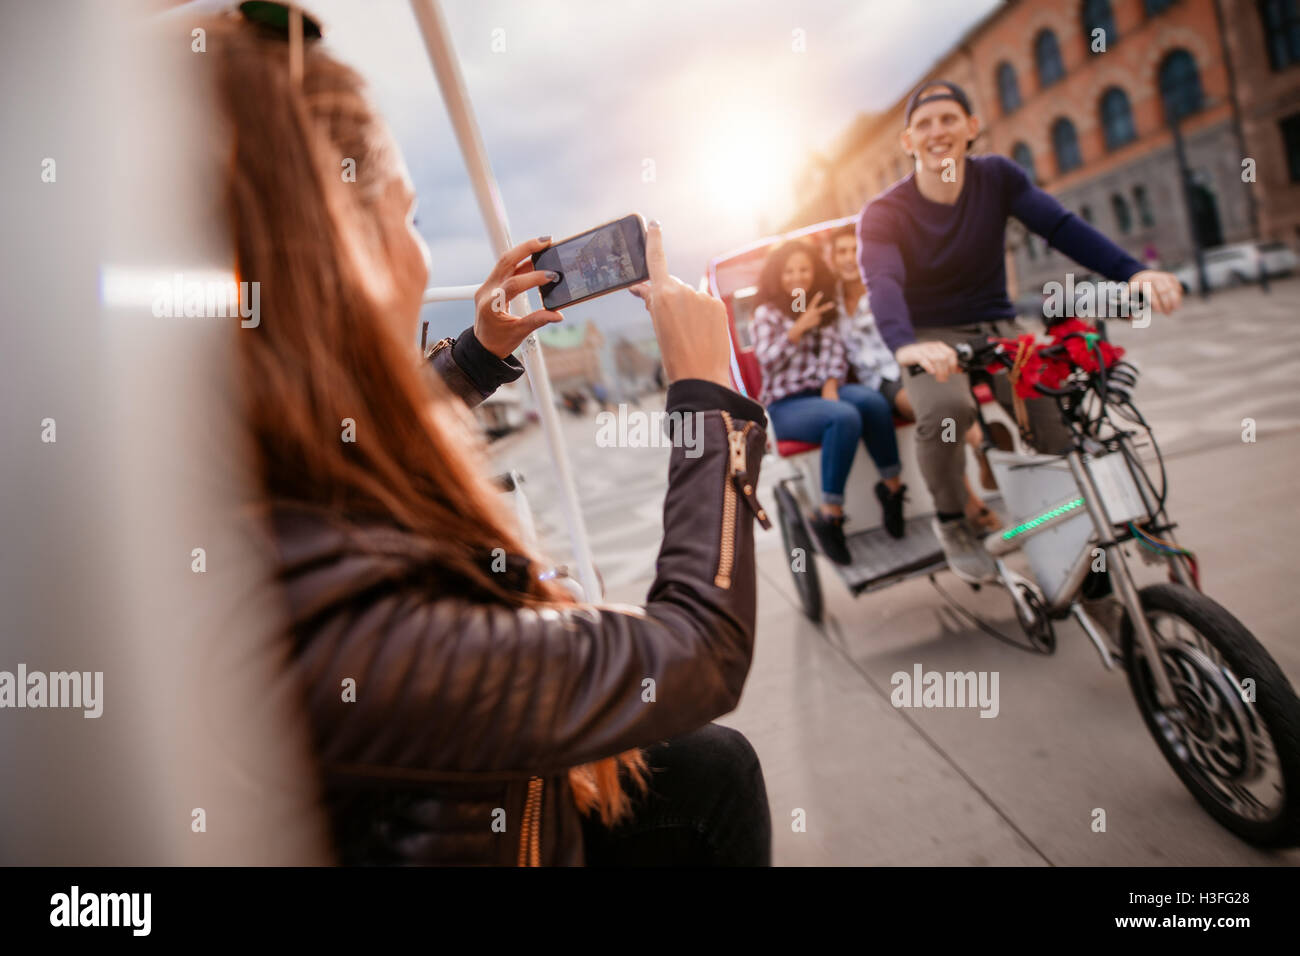 Female taking photographs of friends on tricycle ride. Friends enjoying vacation. - Stock Image